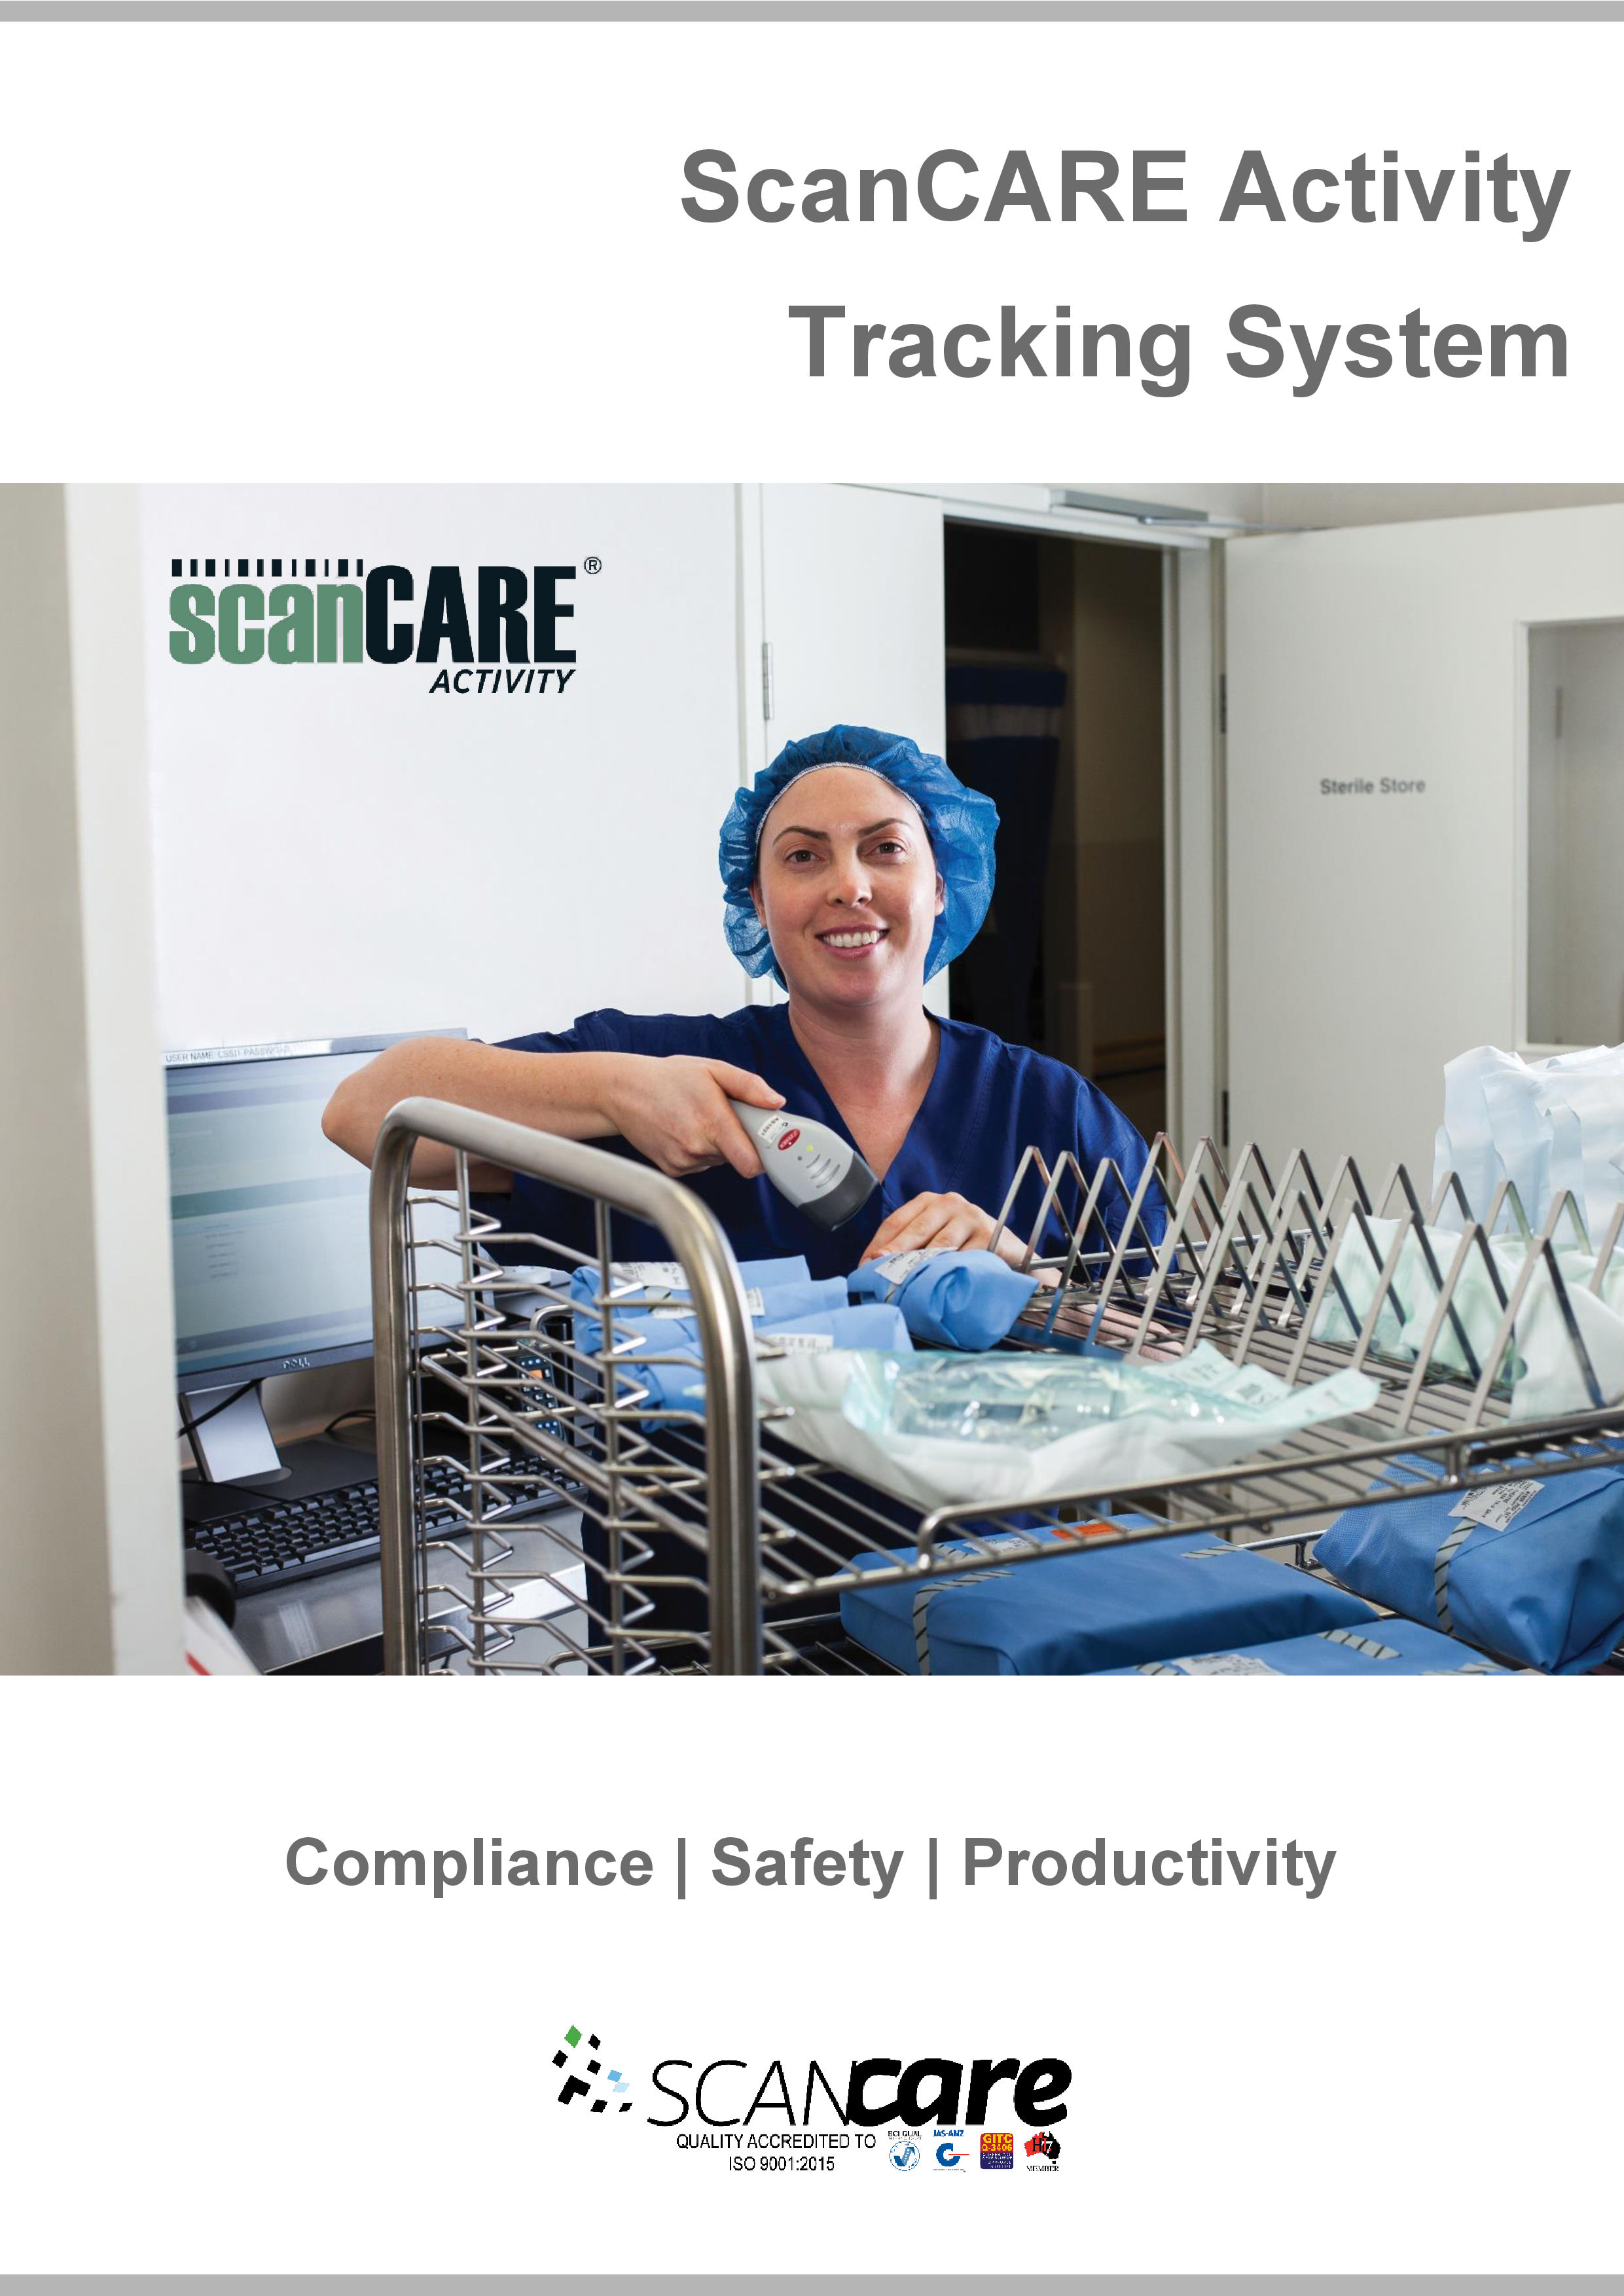 ScanCARE Tracking System Info